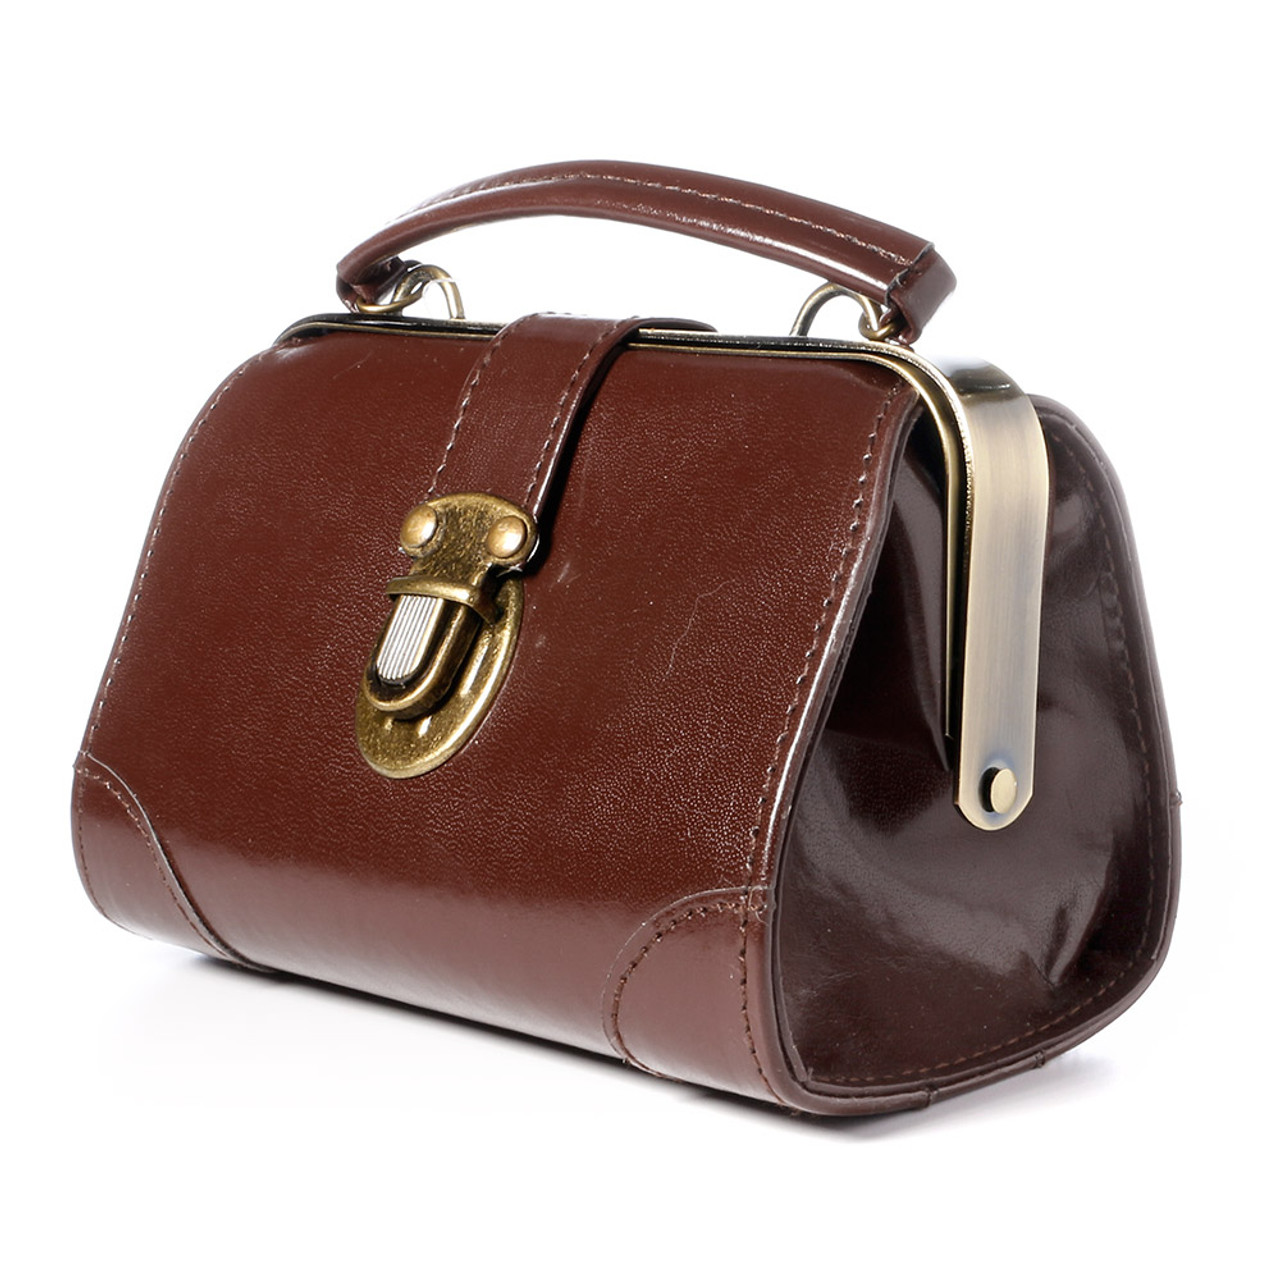 Seto Craft Motif Mini Doctor Bag Shape Pouch / Cosmetic Bag - Brown Color ( Side View )